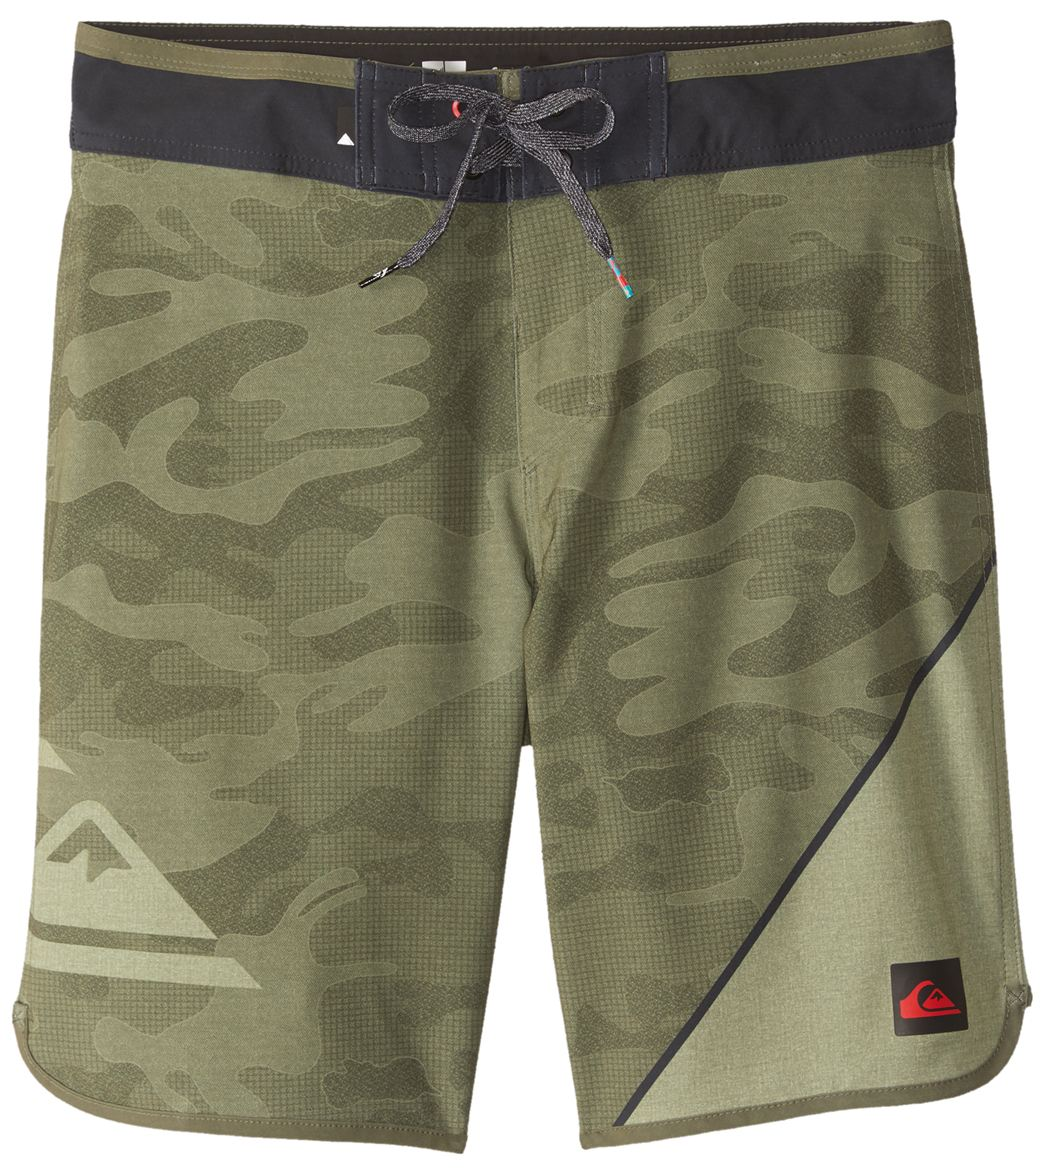 9cc189a48b Quiksilver Men's New Wave Everyday 20 Boardshort at SwimOutlet ...